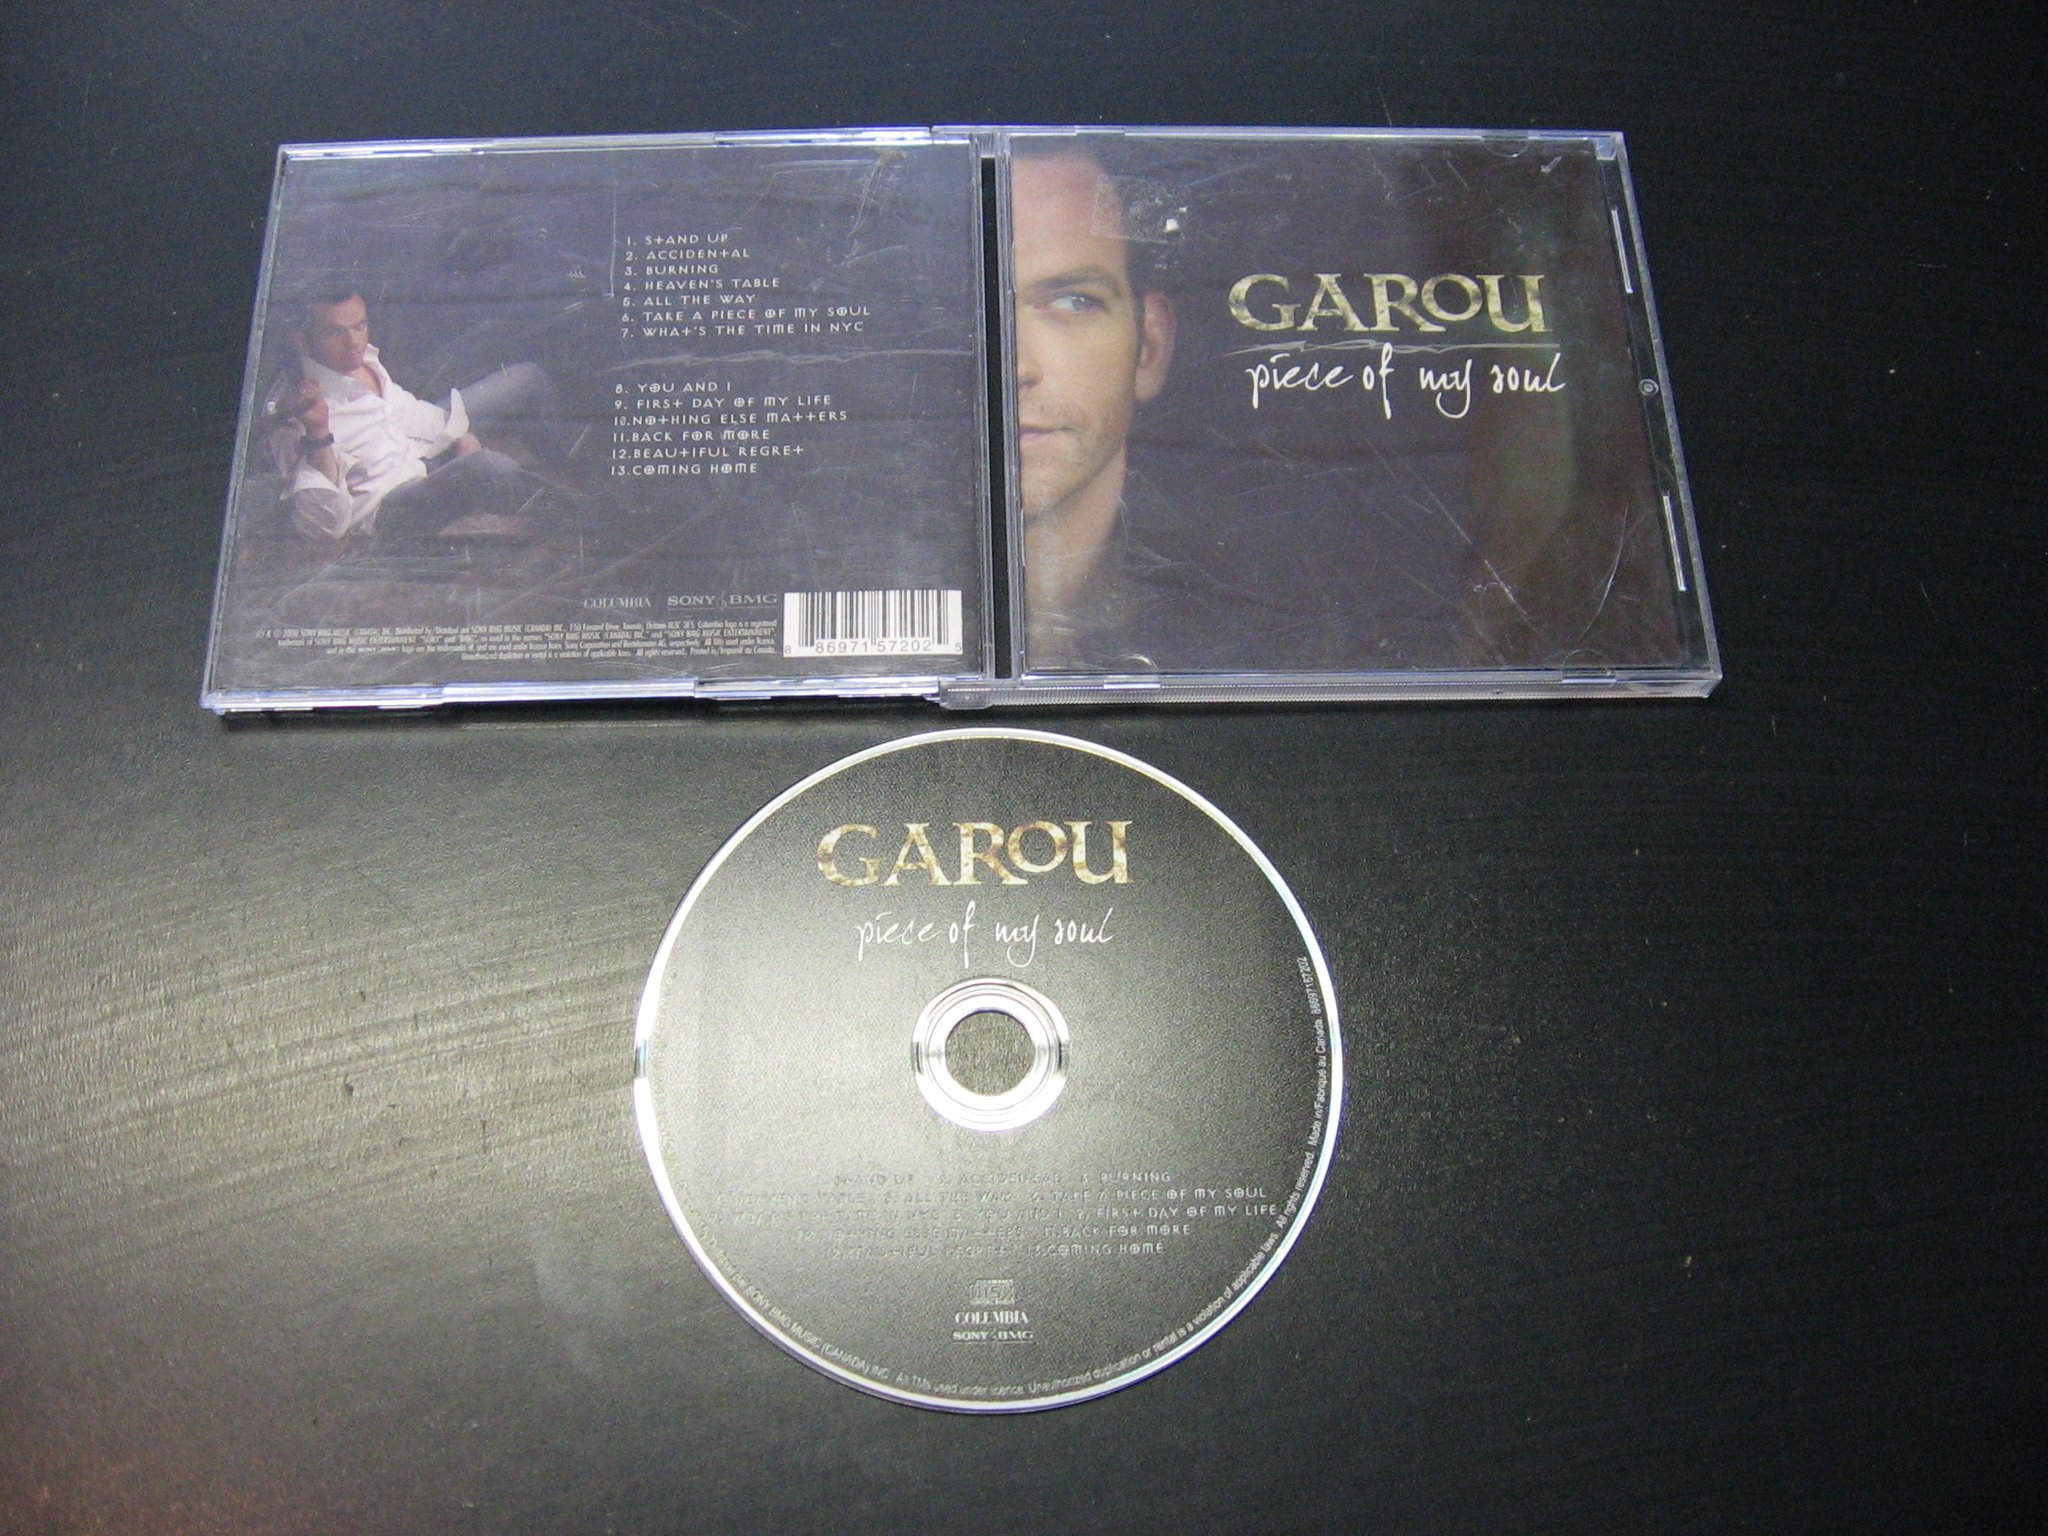 GAROU Piece Of My Soul ___ CD ___ Opole 0271 ```````````` Opole